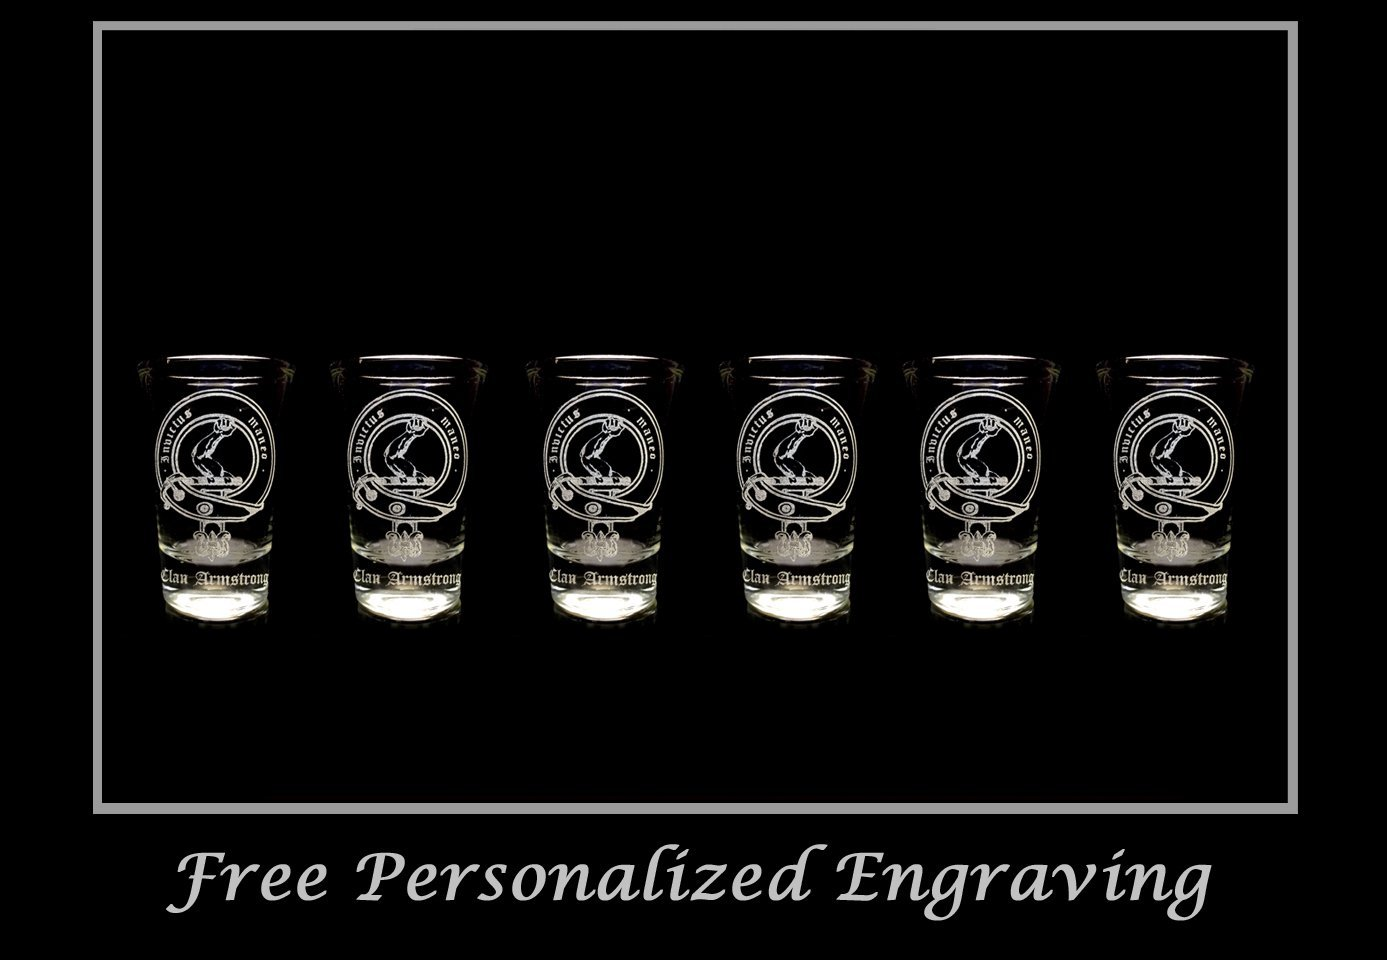 Armstrong Scottish Family Clan Crest Shot Glass, Set of 6 - Free Personalized Engraving, Celtic Decor, Scottish Glass